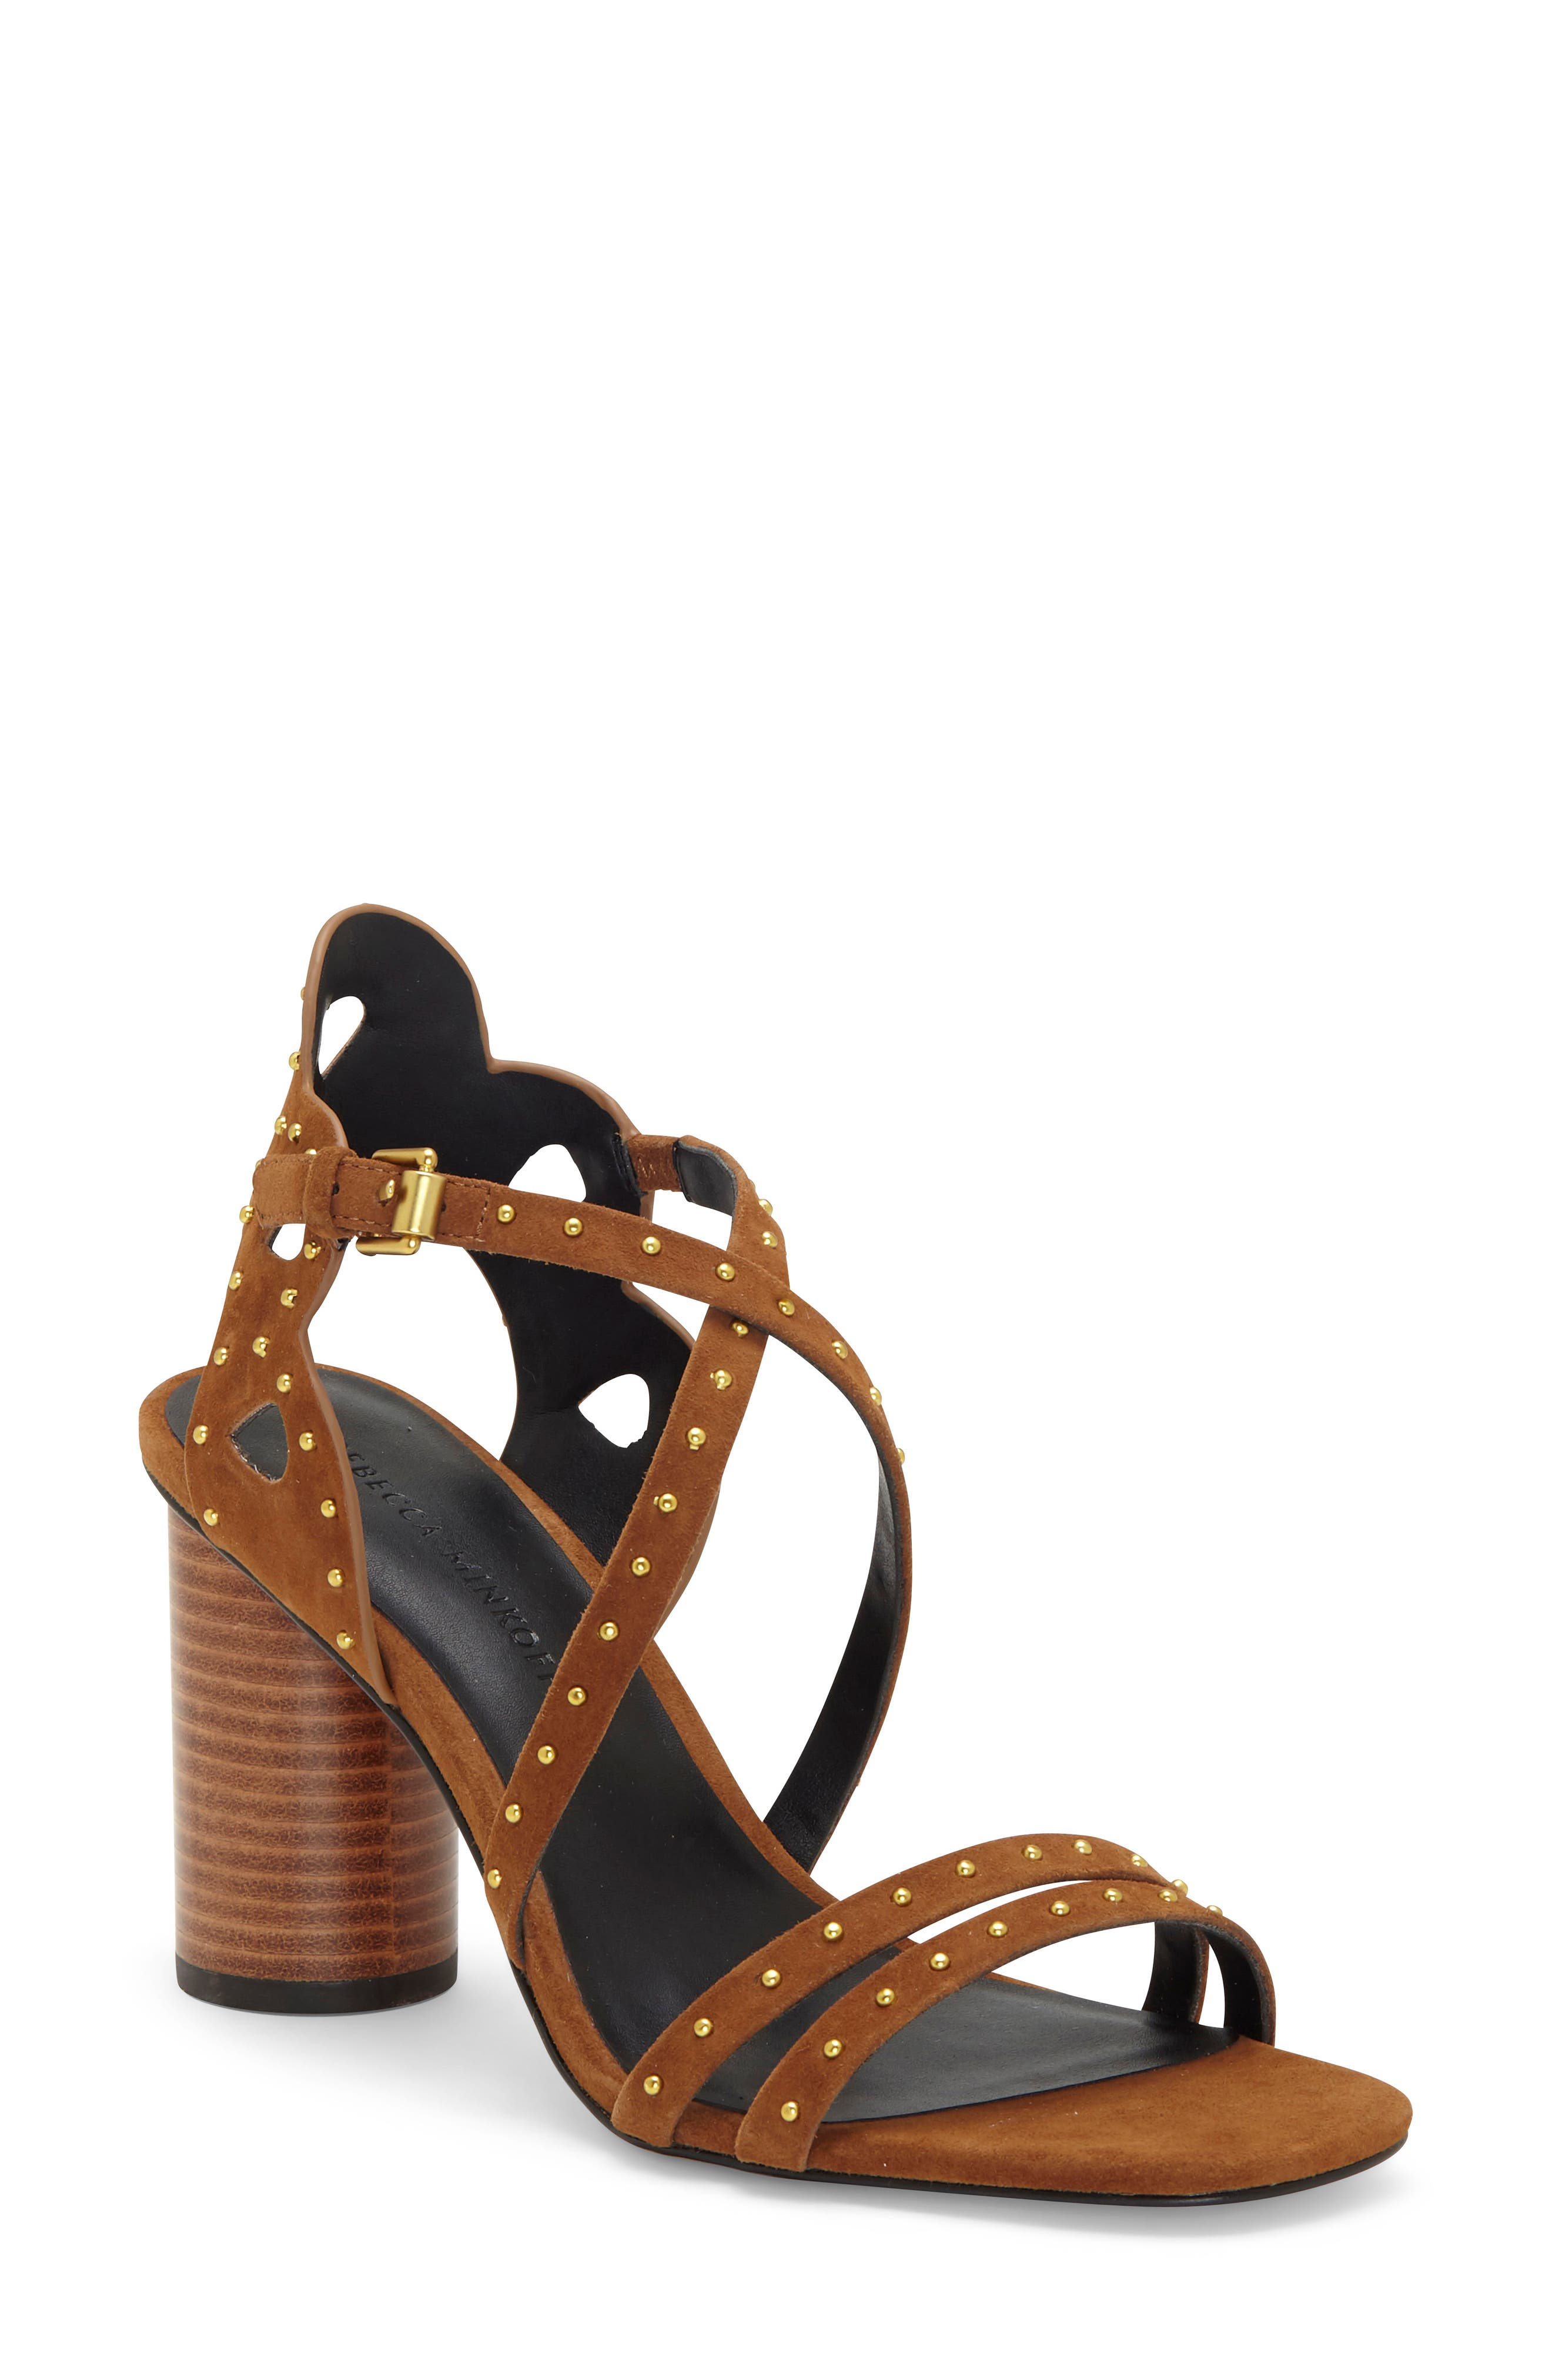 Pinpoint studs illuminate the crisscrossing straps of a lofty block-heel sandal that\\\'s ready to steal the scene. Style Name: Rebecca Minkoff Adeleine Block Heel Sandal (Women). Style Number: 6023432. Available in stores.